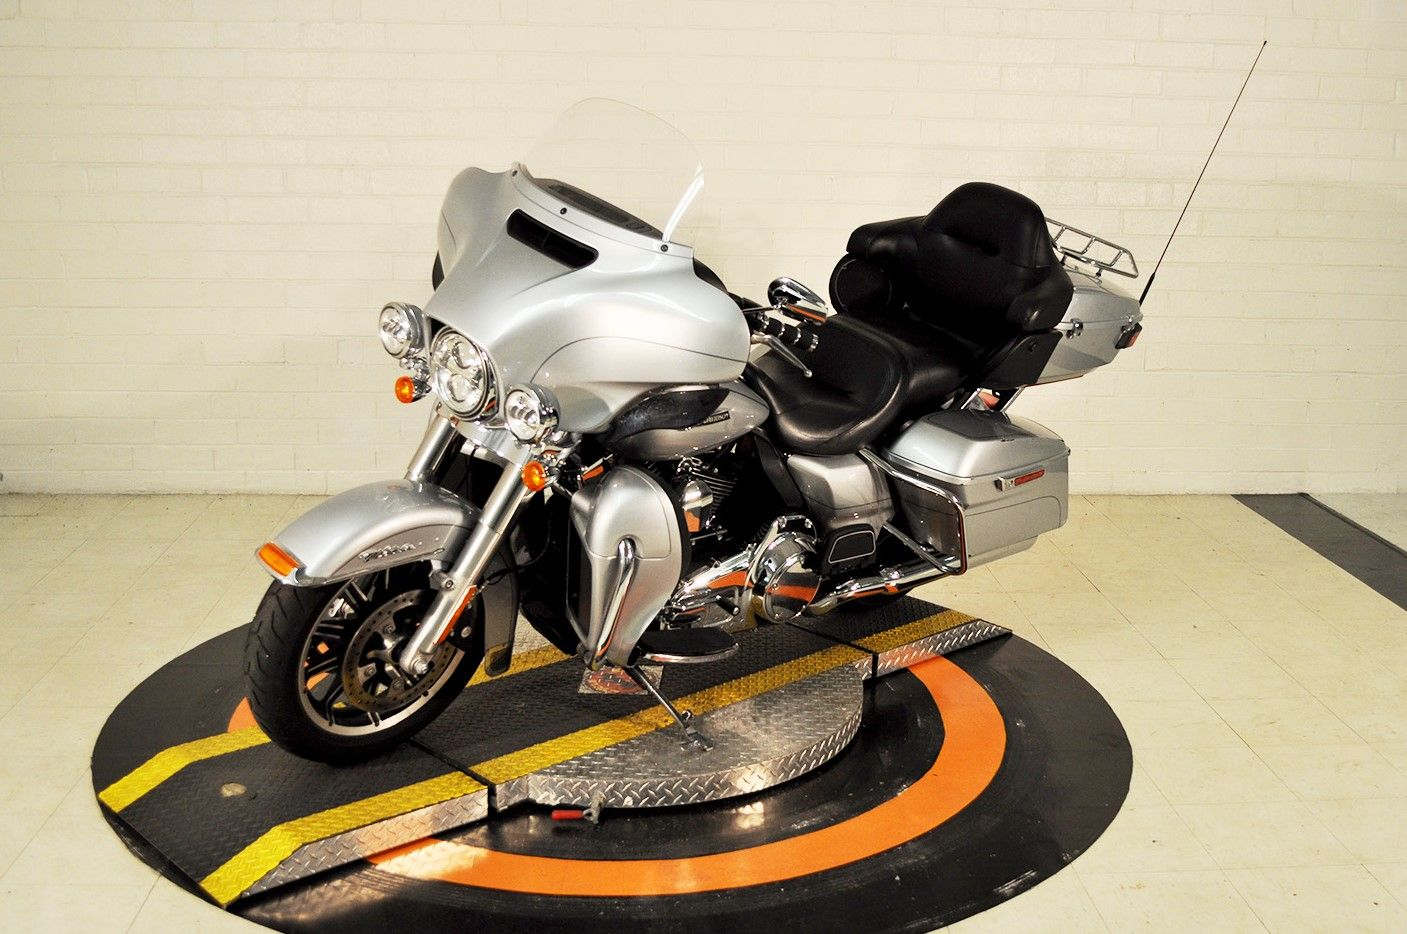 Pre-Owned 2015 Harley-Davidson Electra Glide Ultra Classic